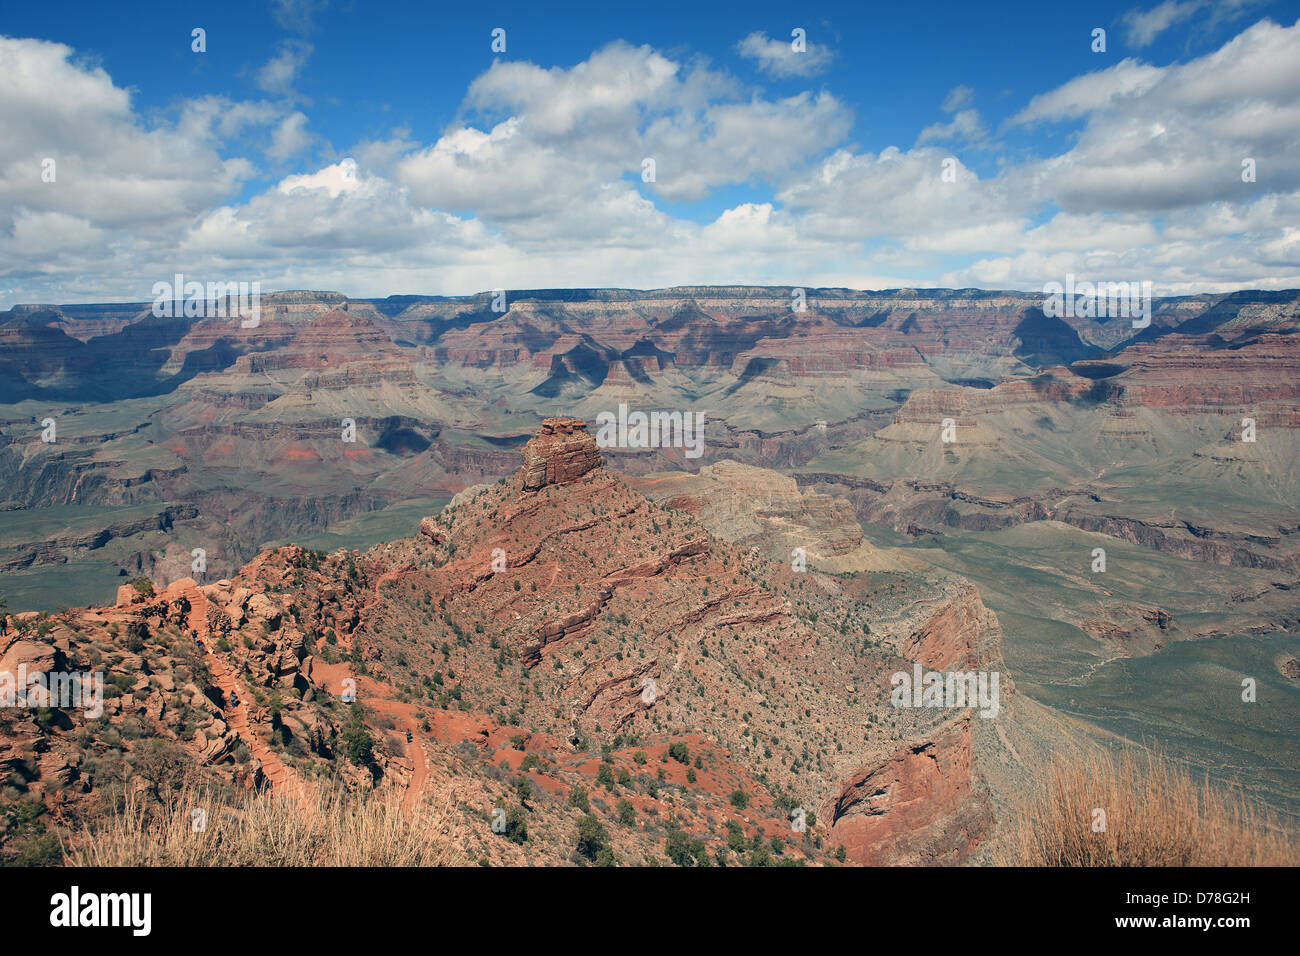 View of O'Neill Butte on the Kaibab Trail in the Grand Canyon in Arizona, USA with the North Rim visible in - Stock Image